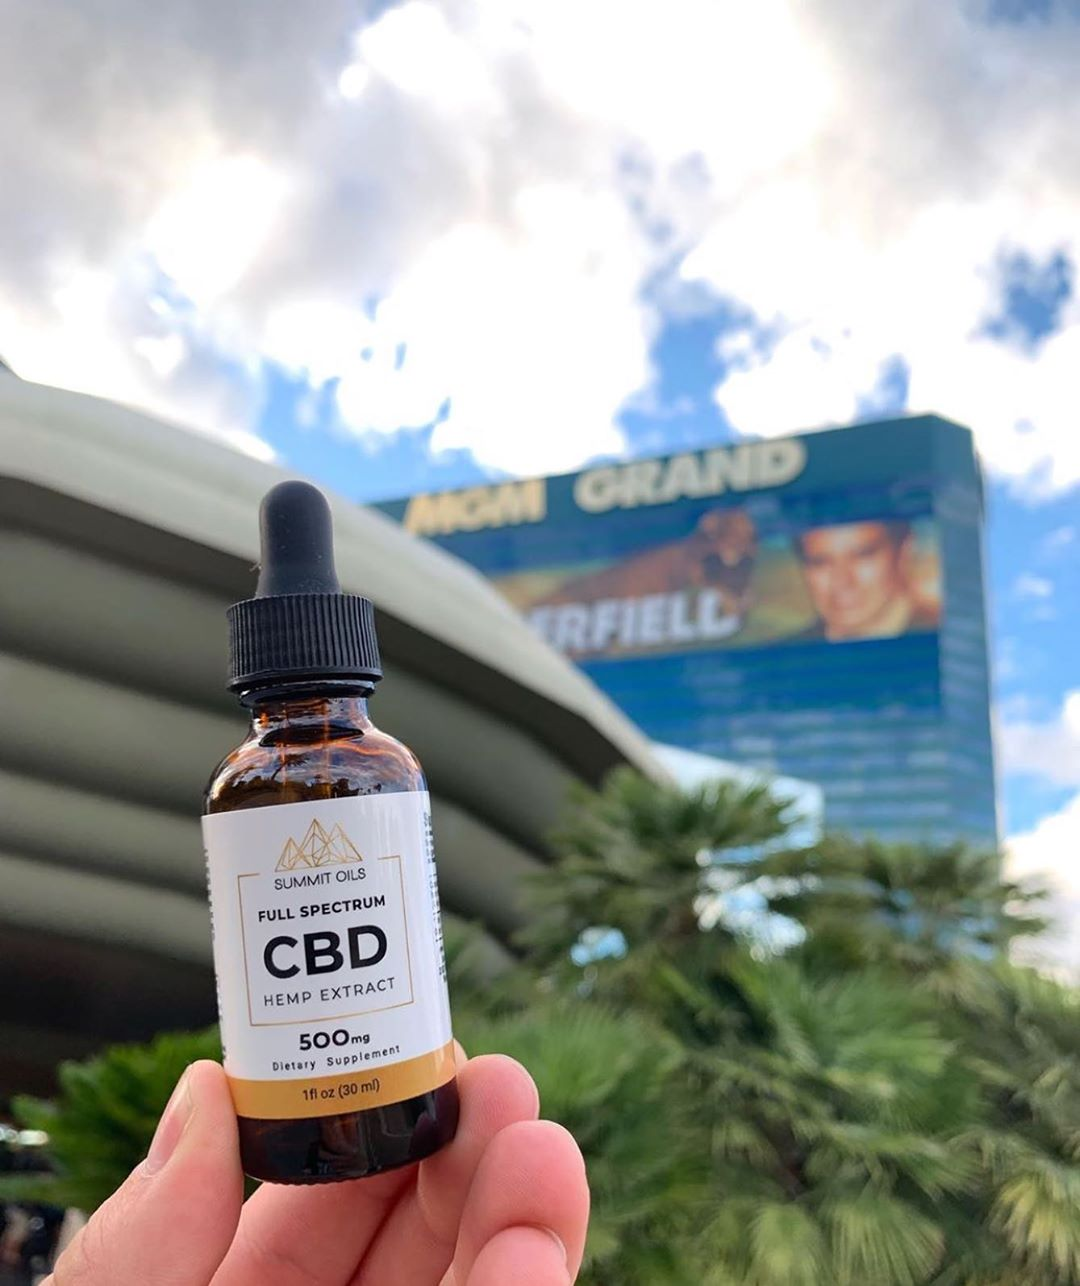 Health Insurance & CBD Oil: Here's What You Should Know